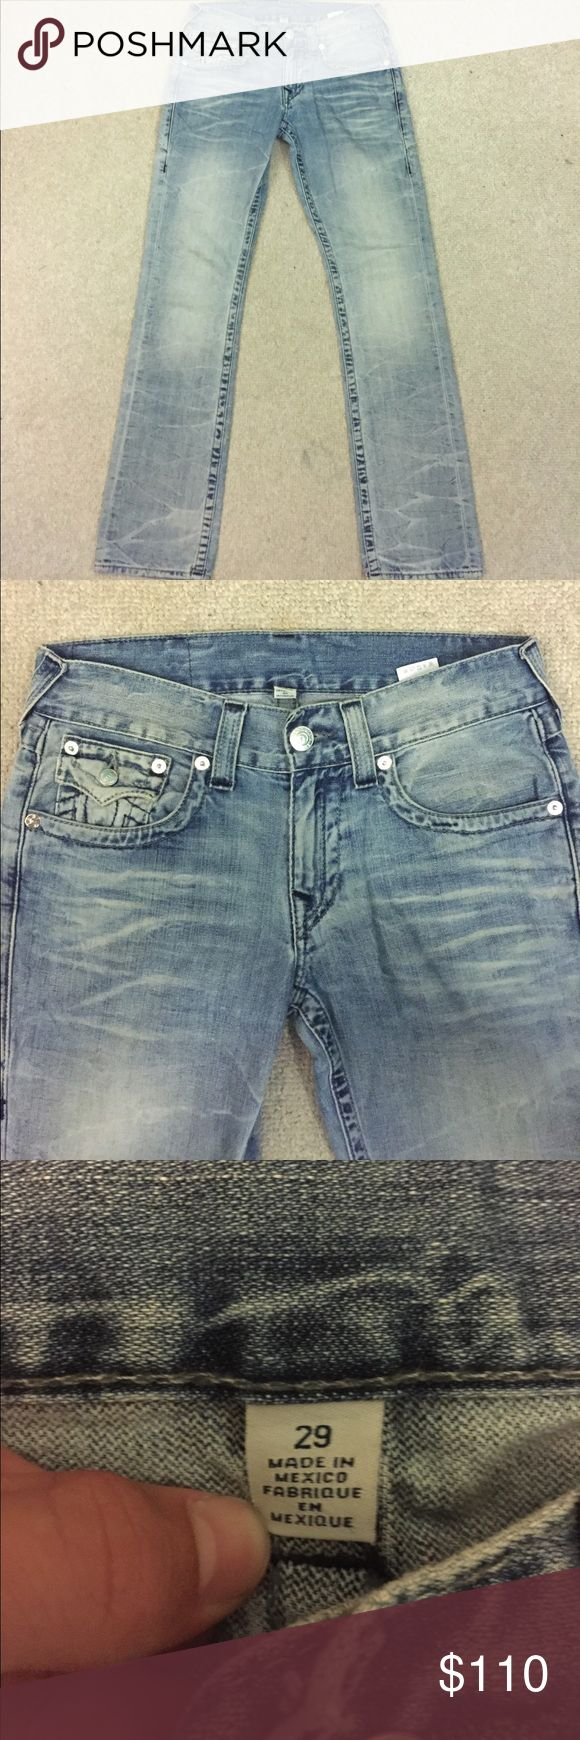 best 25+ true religion jeans ideas on pinterest | true jeans, miss